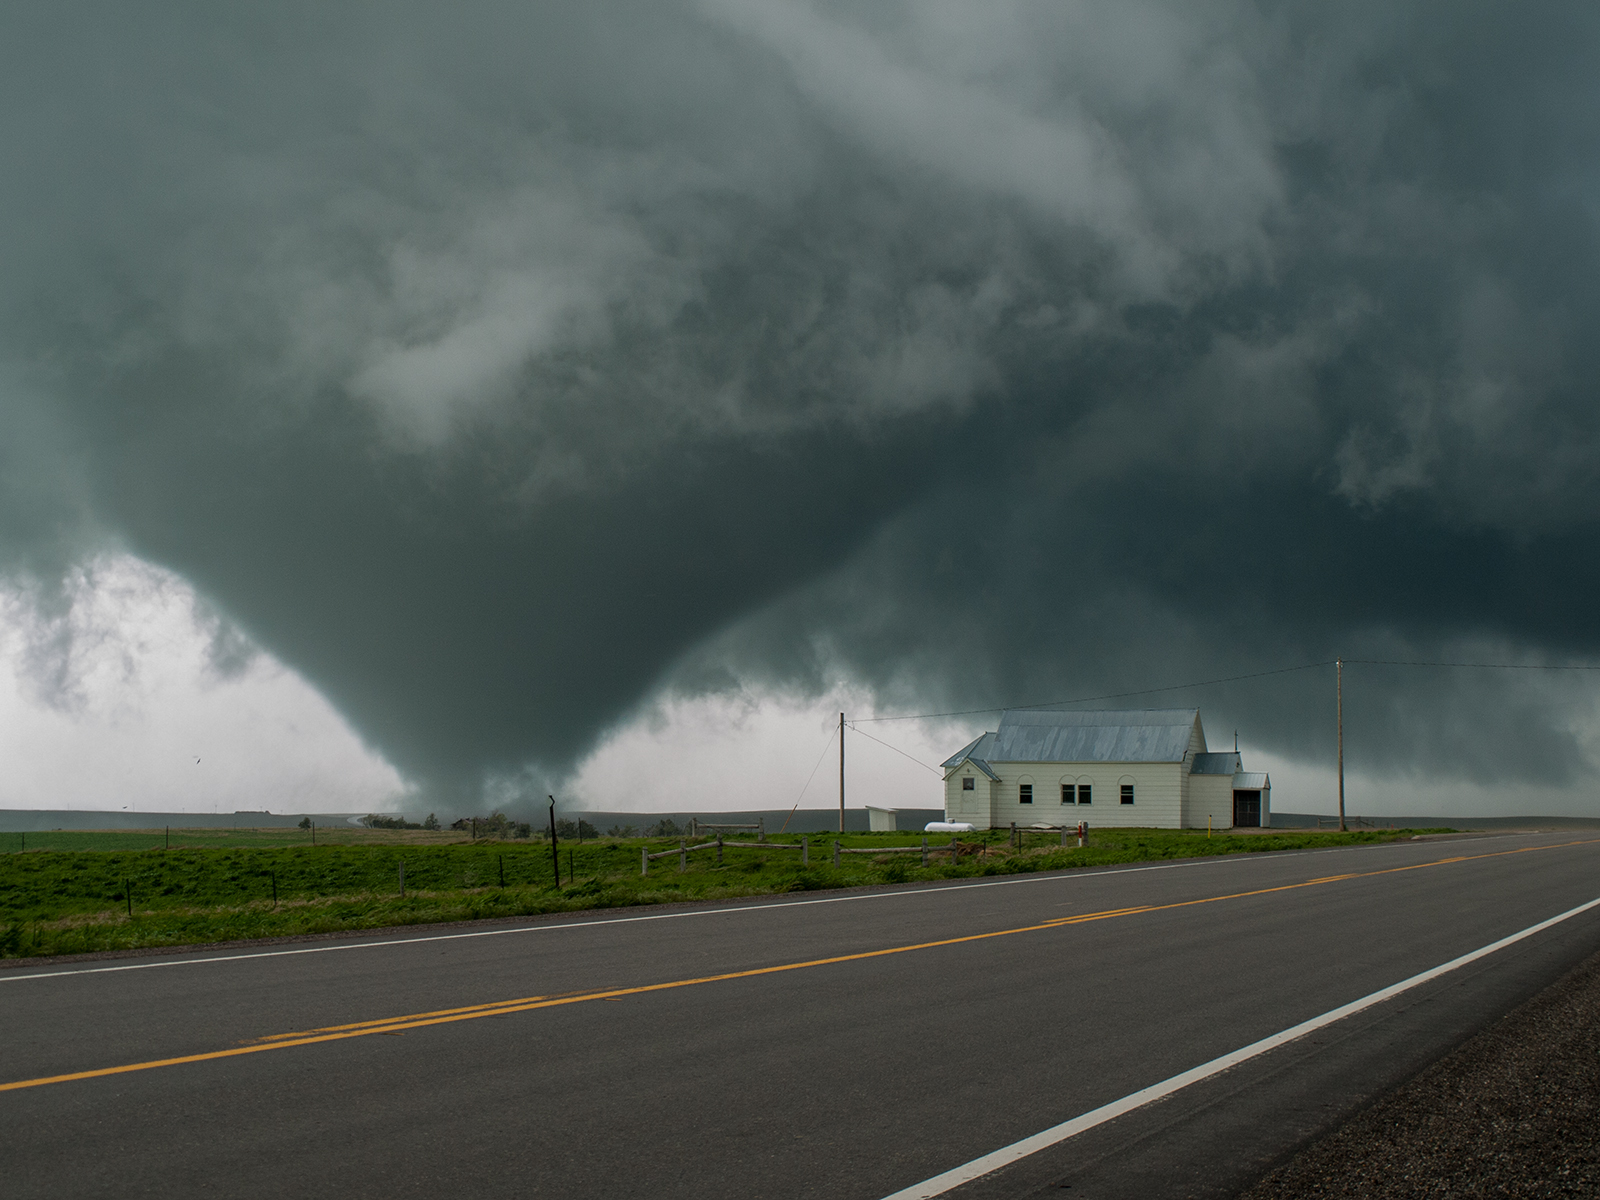 A tornado in South Dakota, by George Kourounis